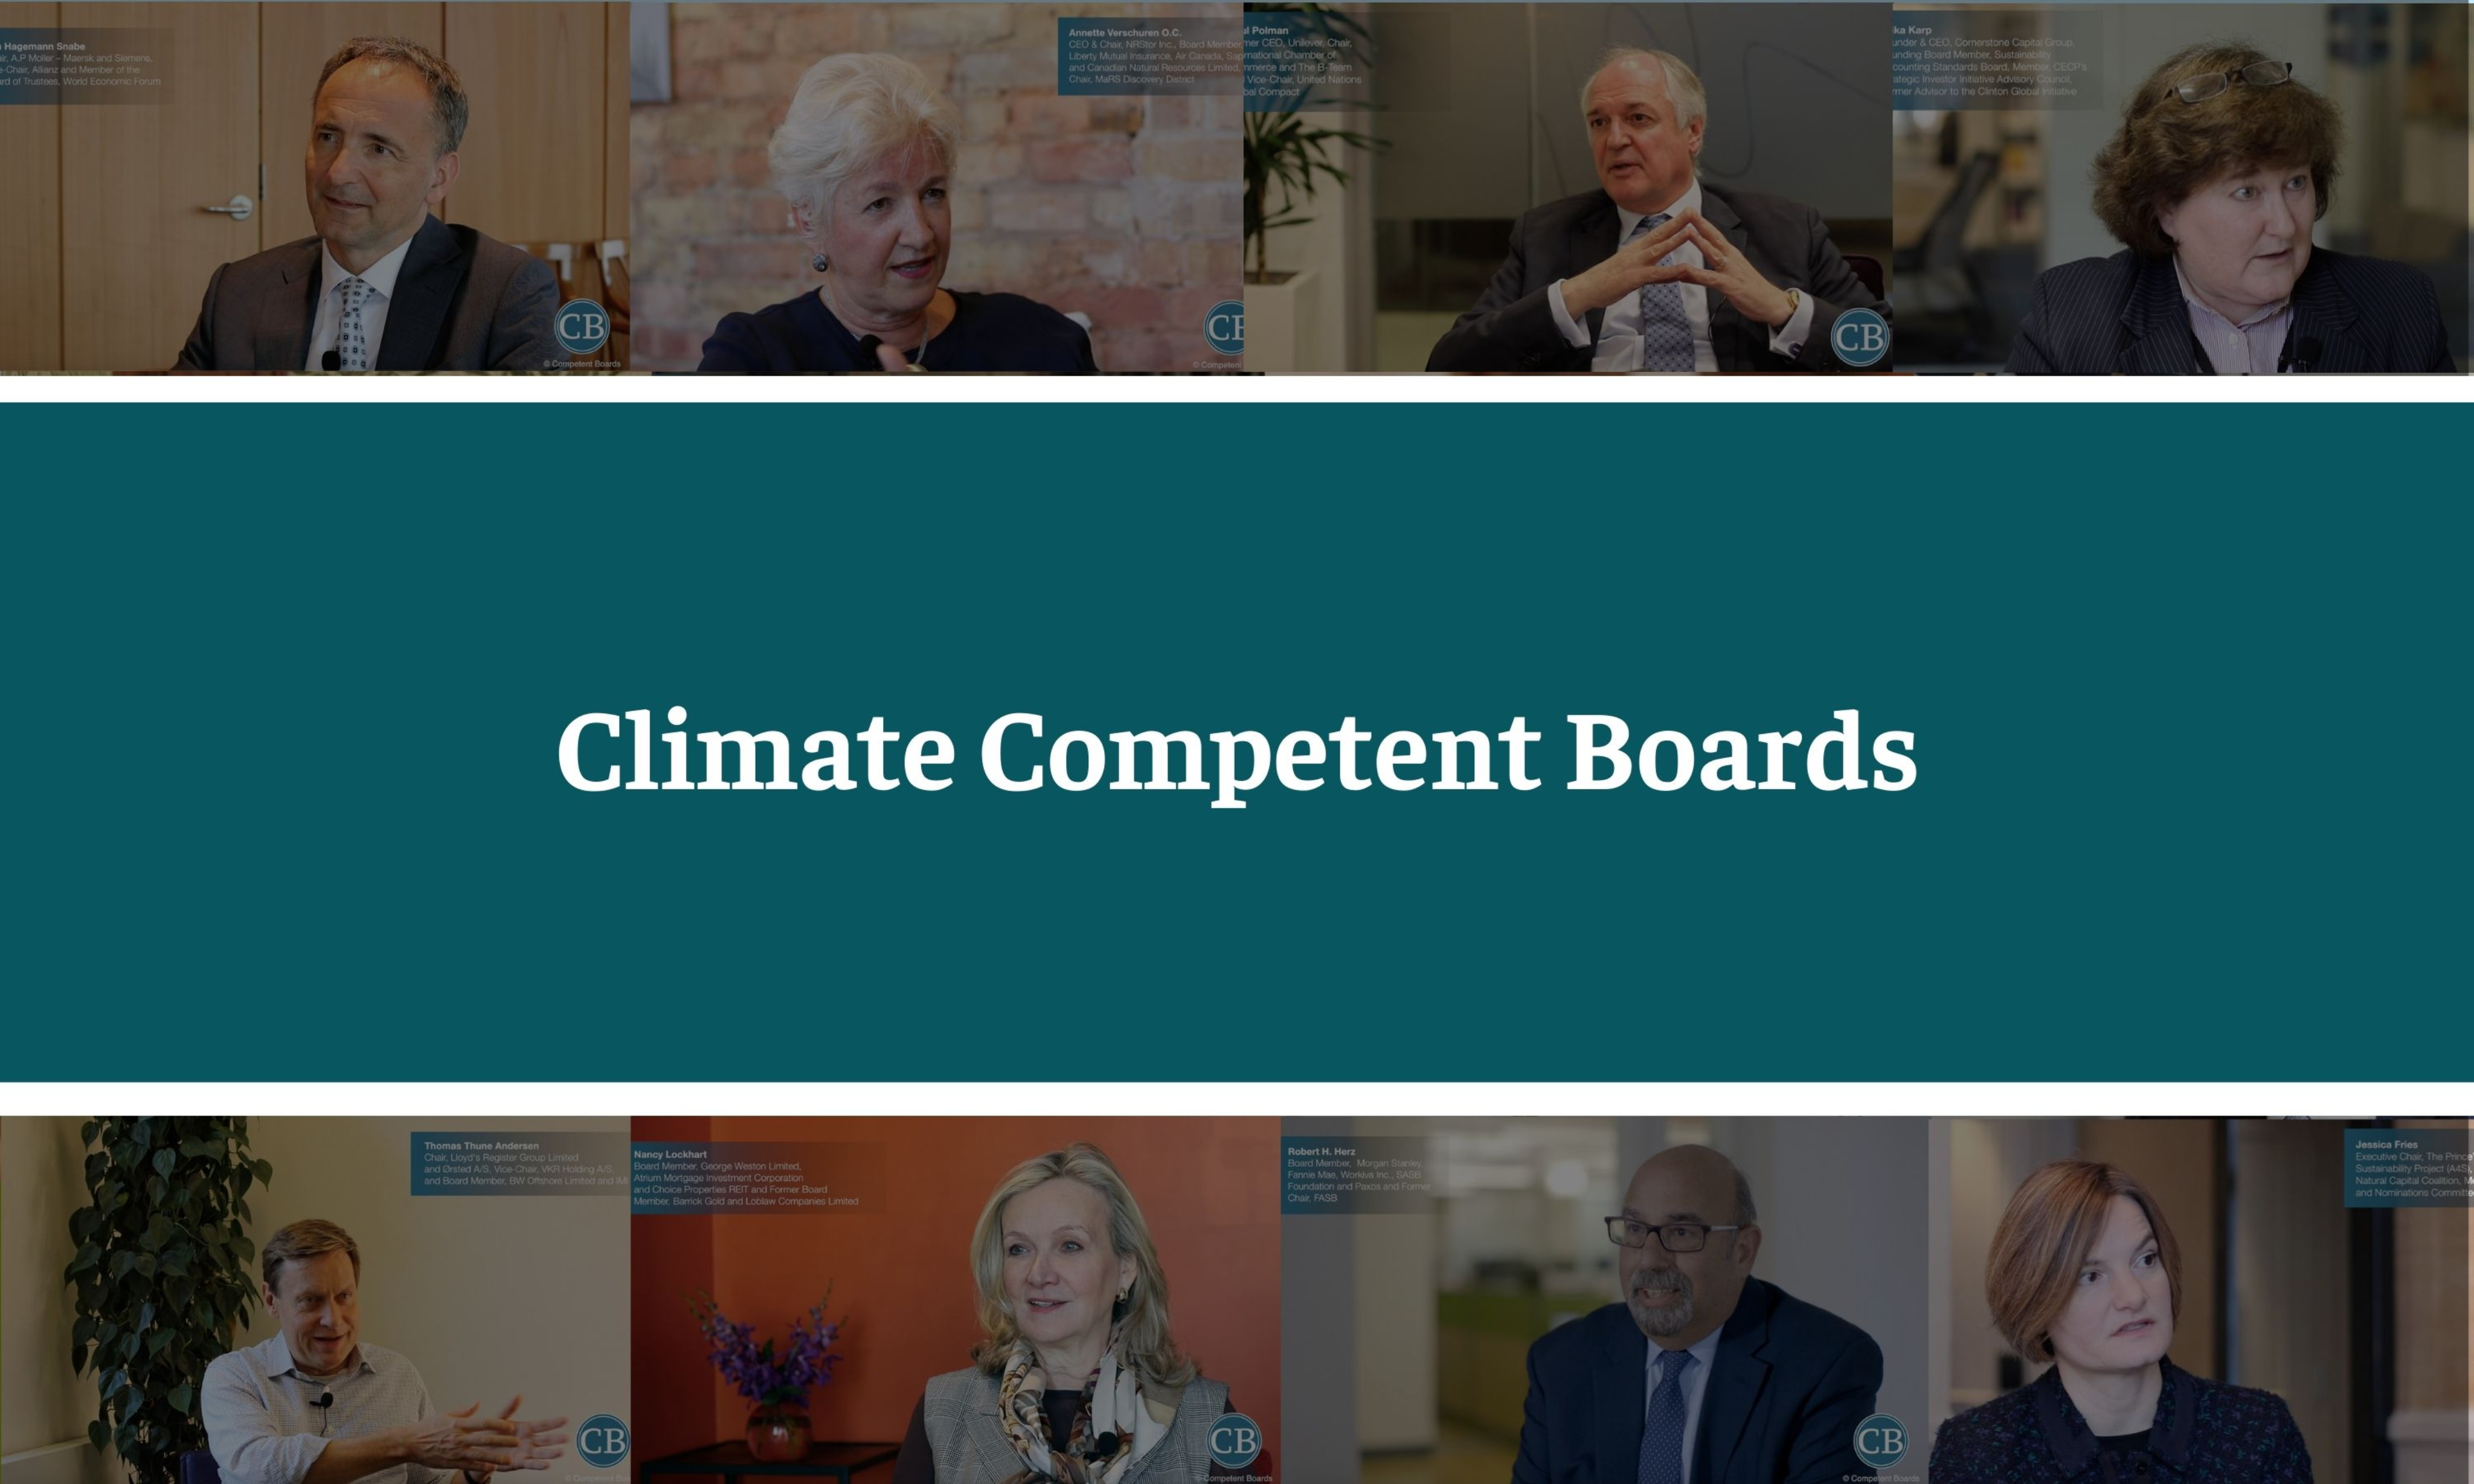 June 23rd- Climate Competent Boards - Doctors Without Borders